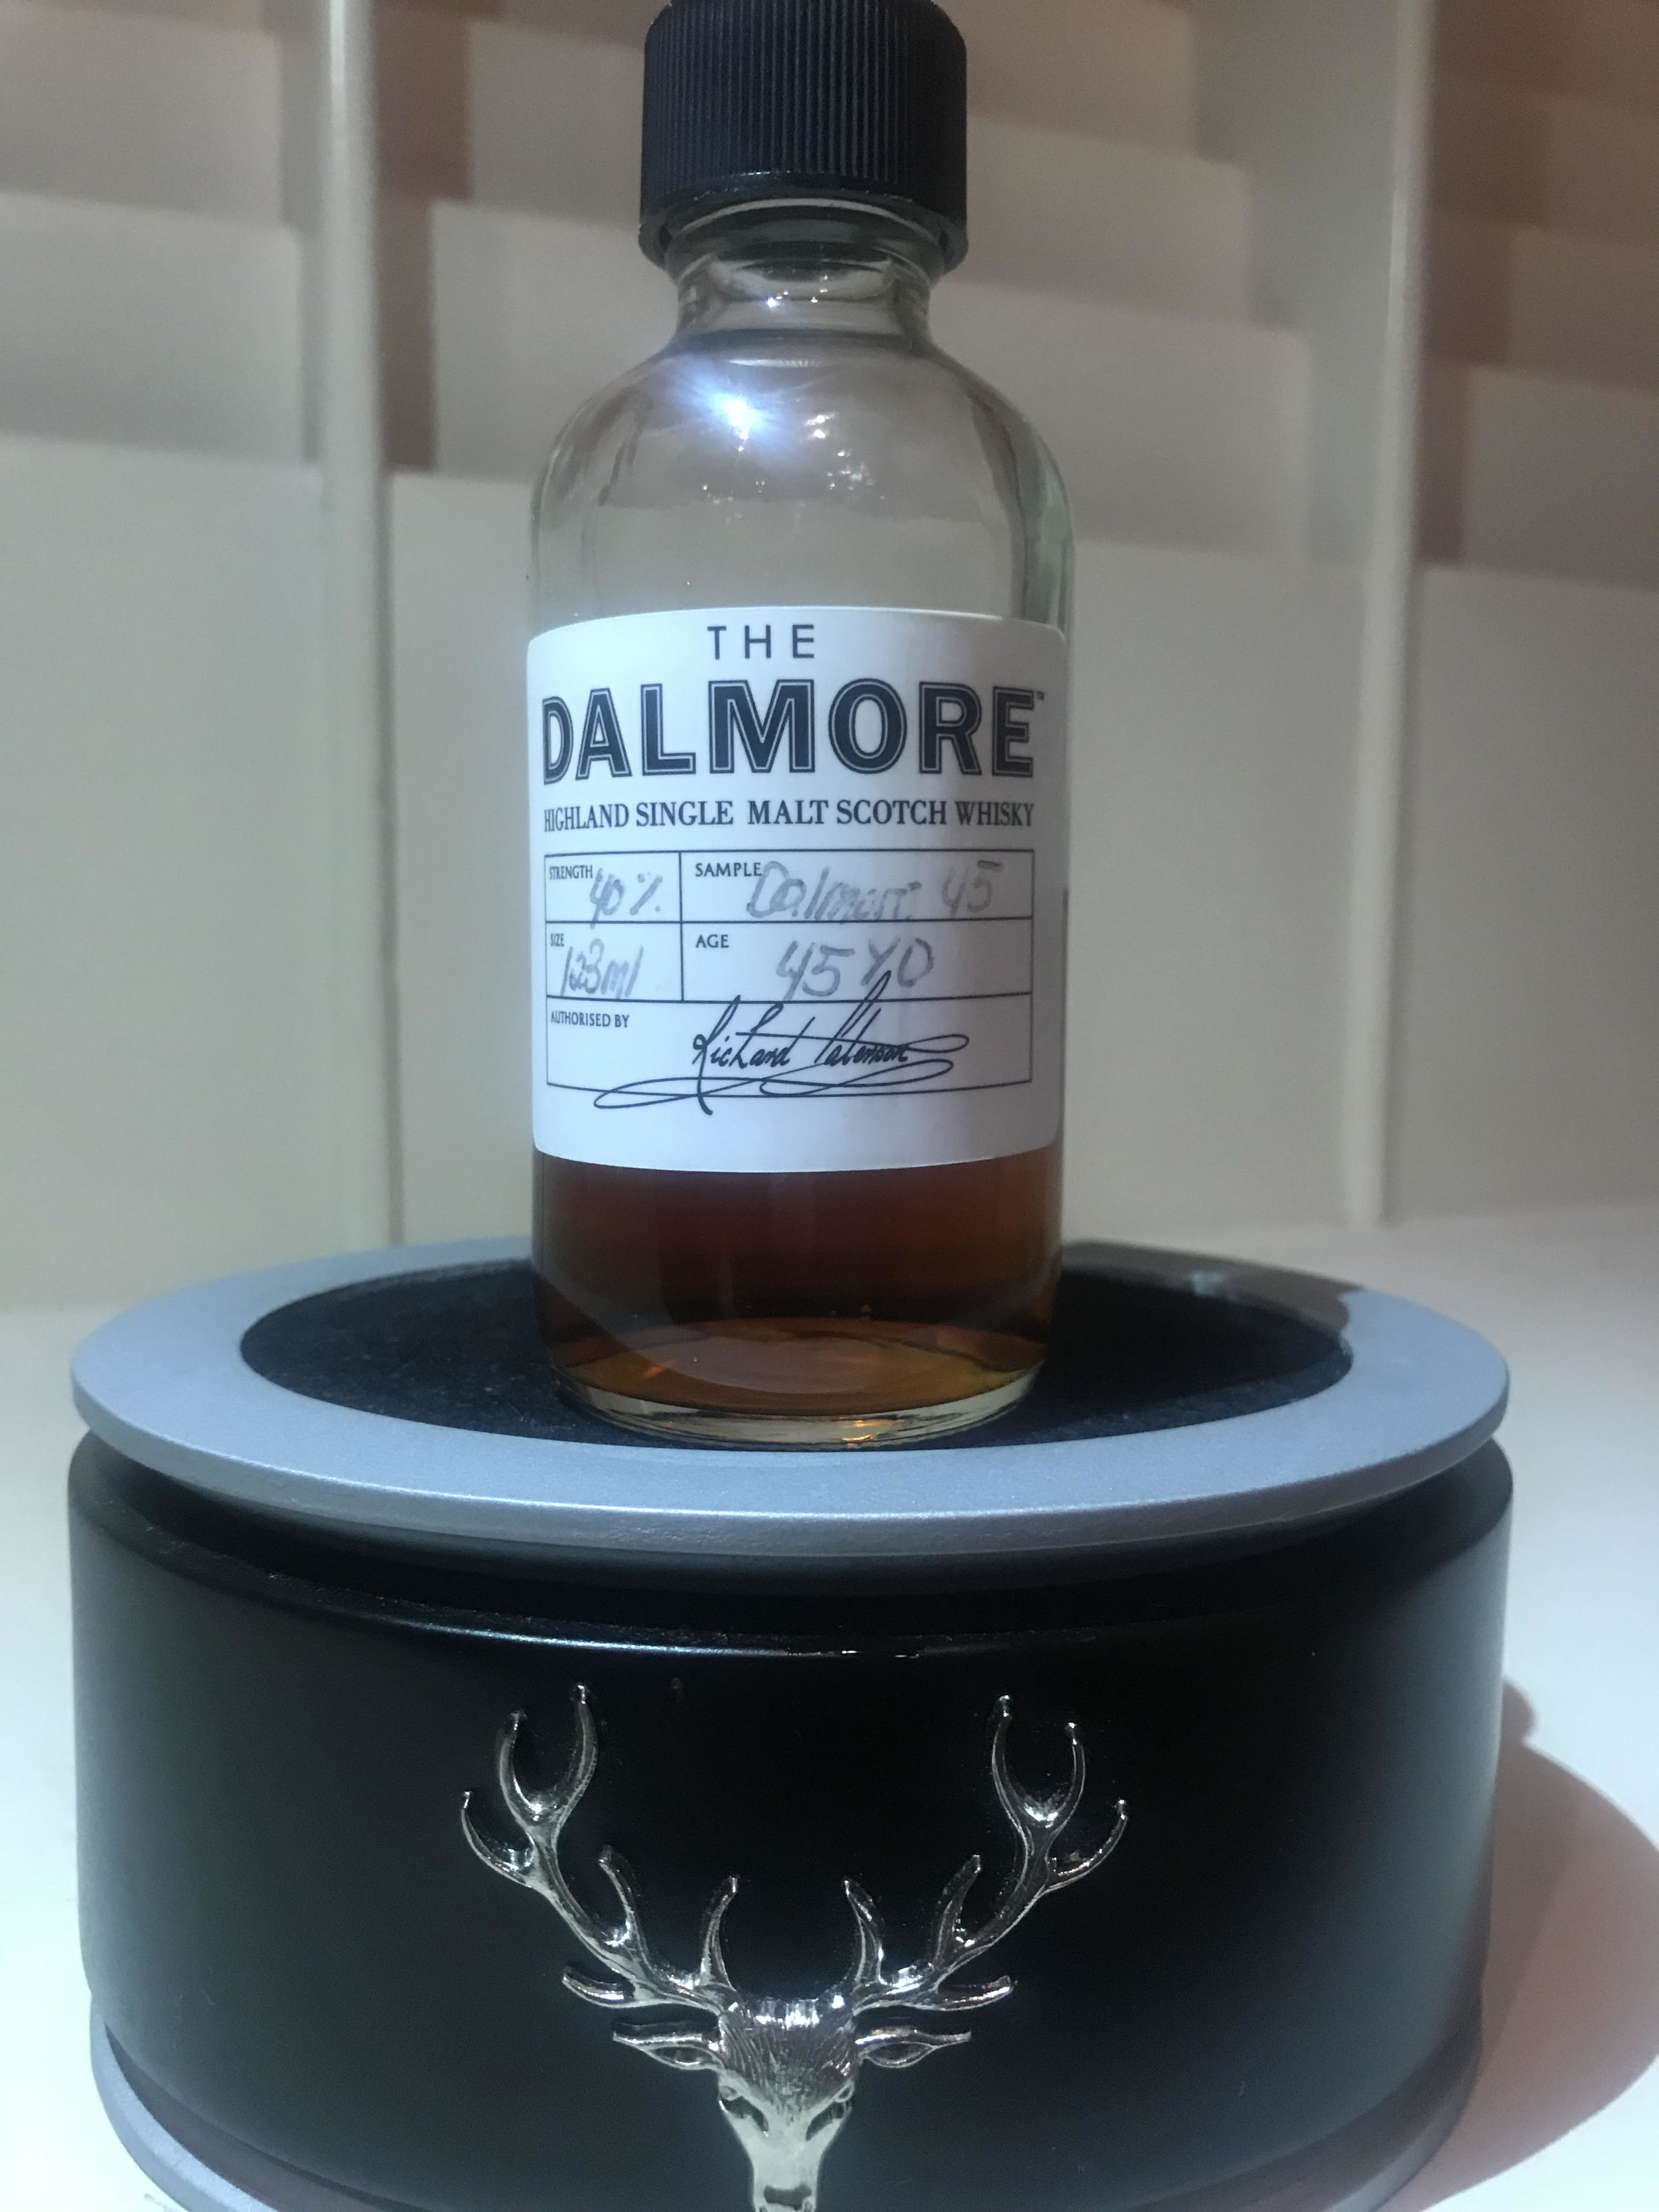 Dalmore 45 Year - Produced by Whyte & Mackay